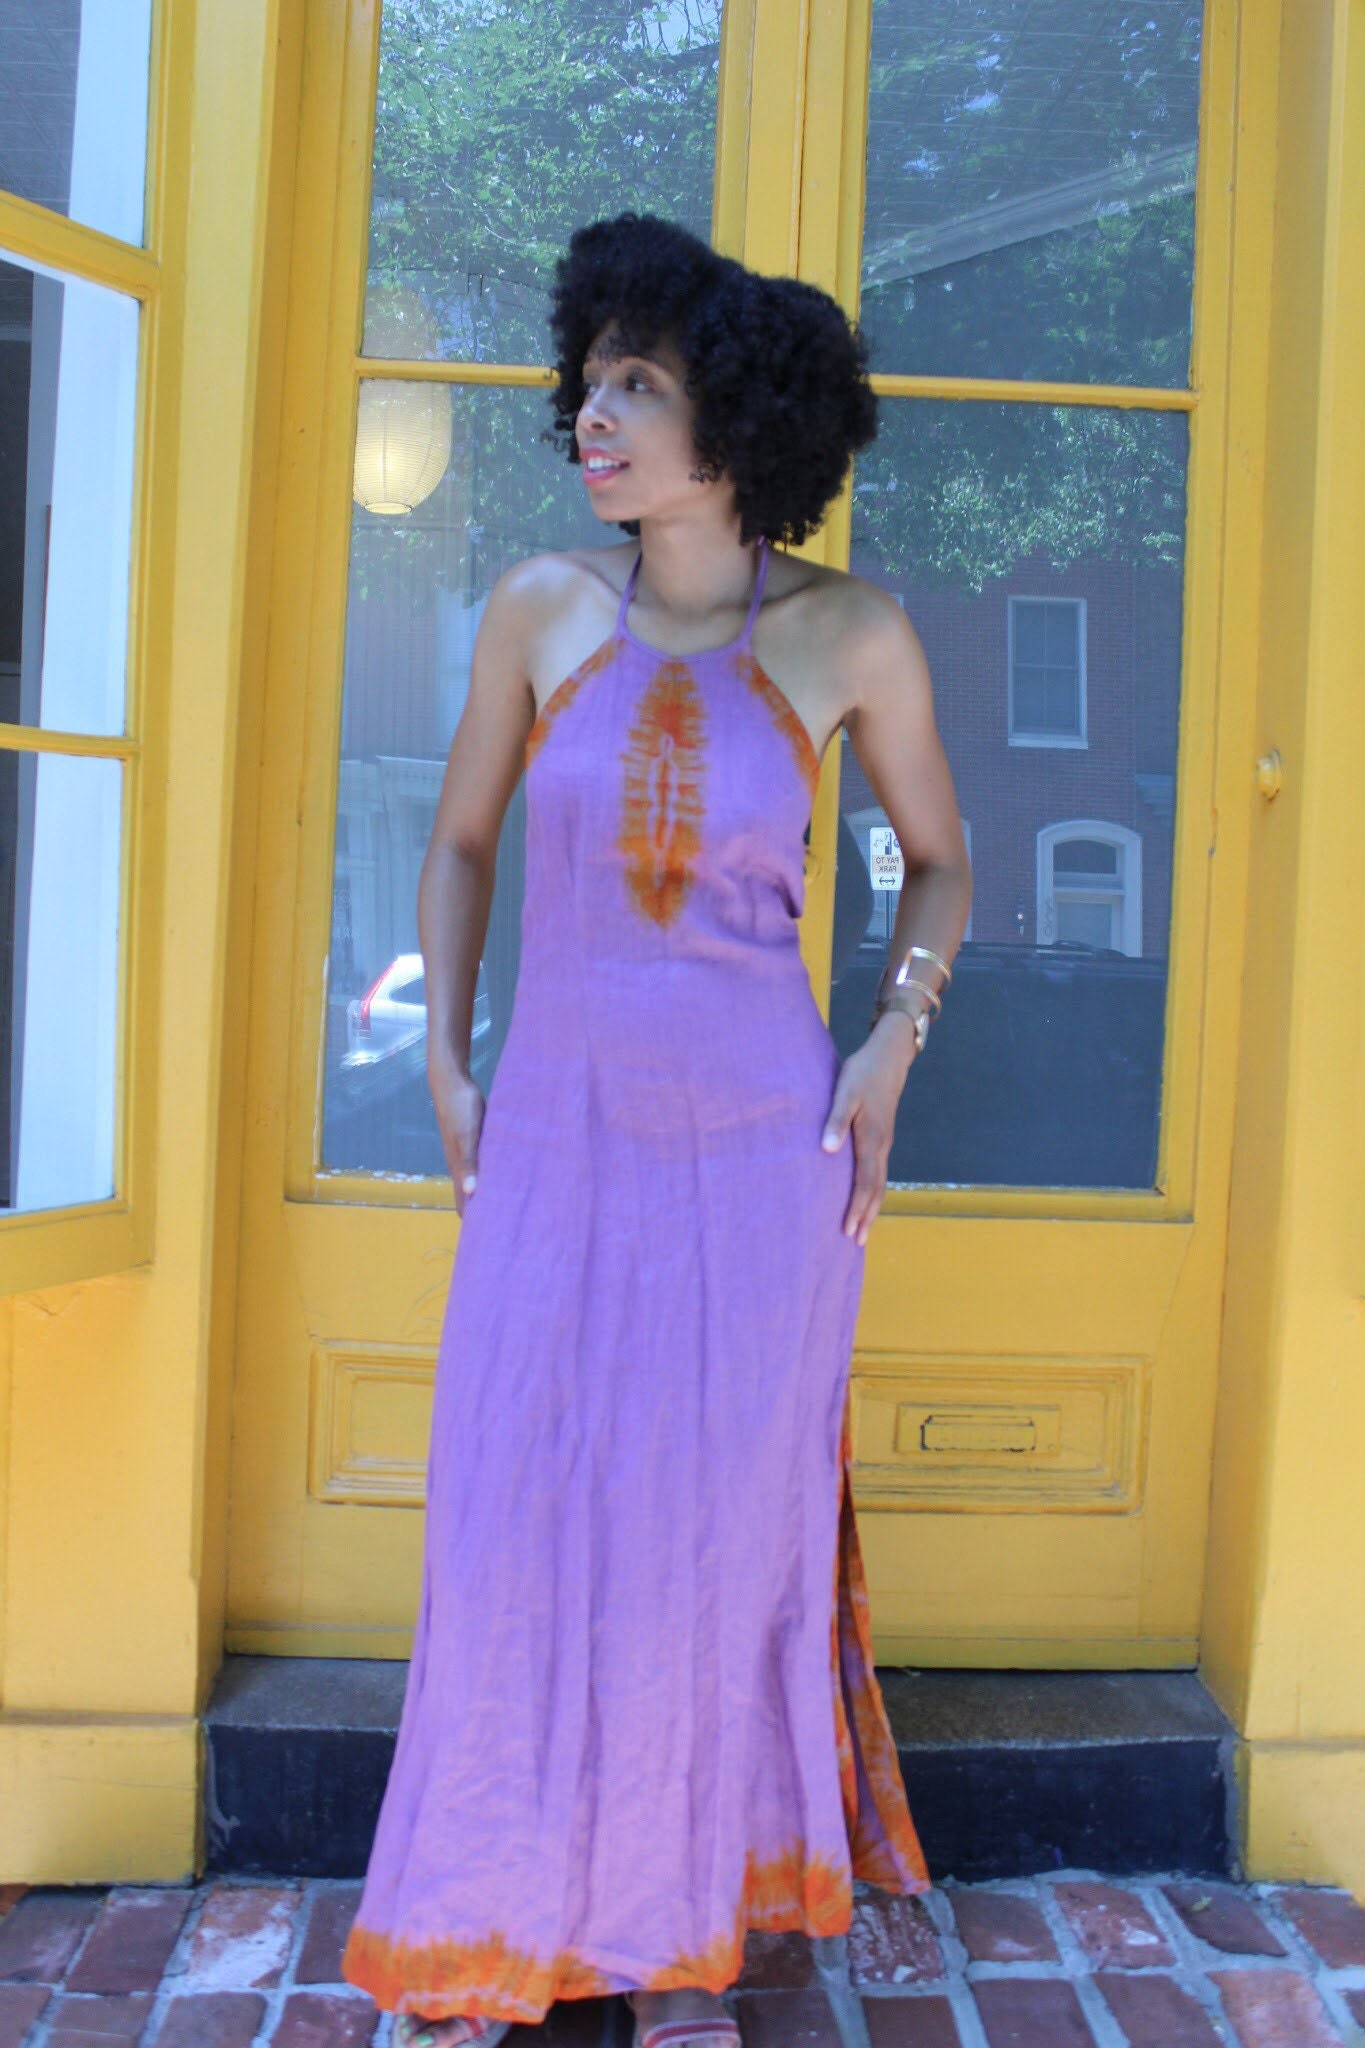 5622f3f72a3f 1960s 1970s Linen Tie Dye Halter Neck Style Maxi Dress with